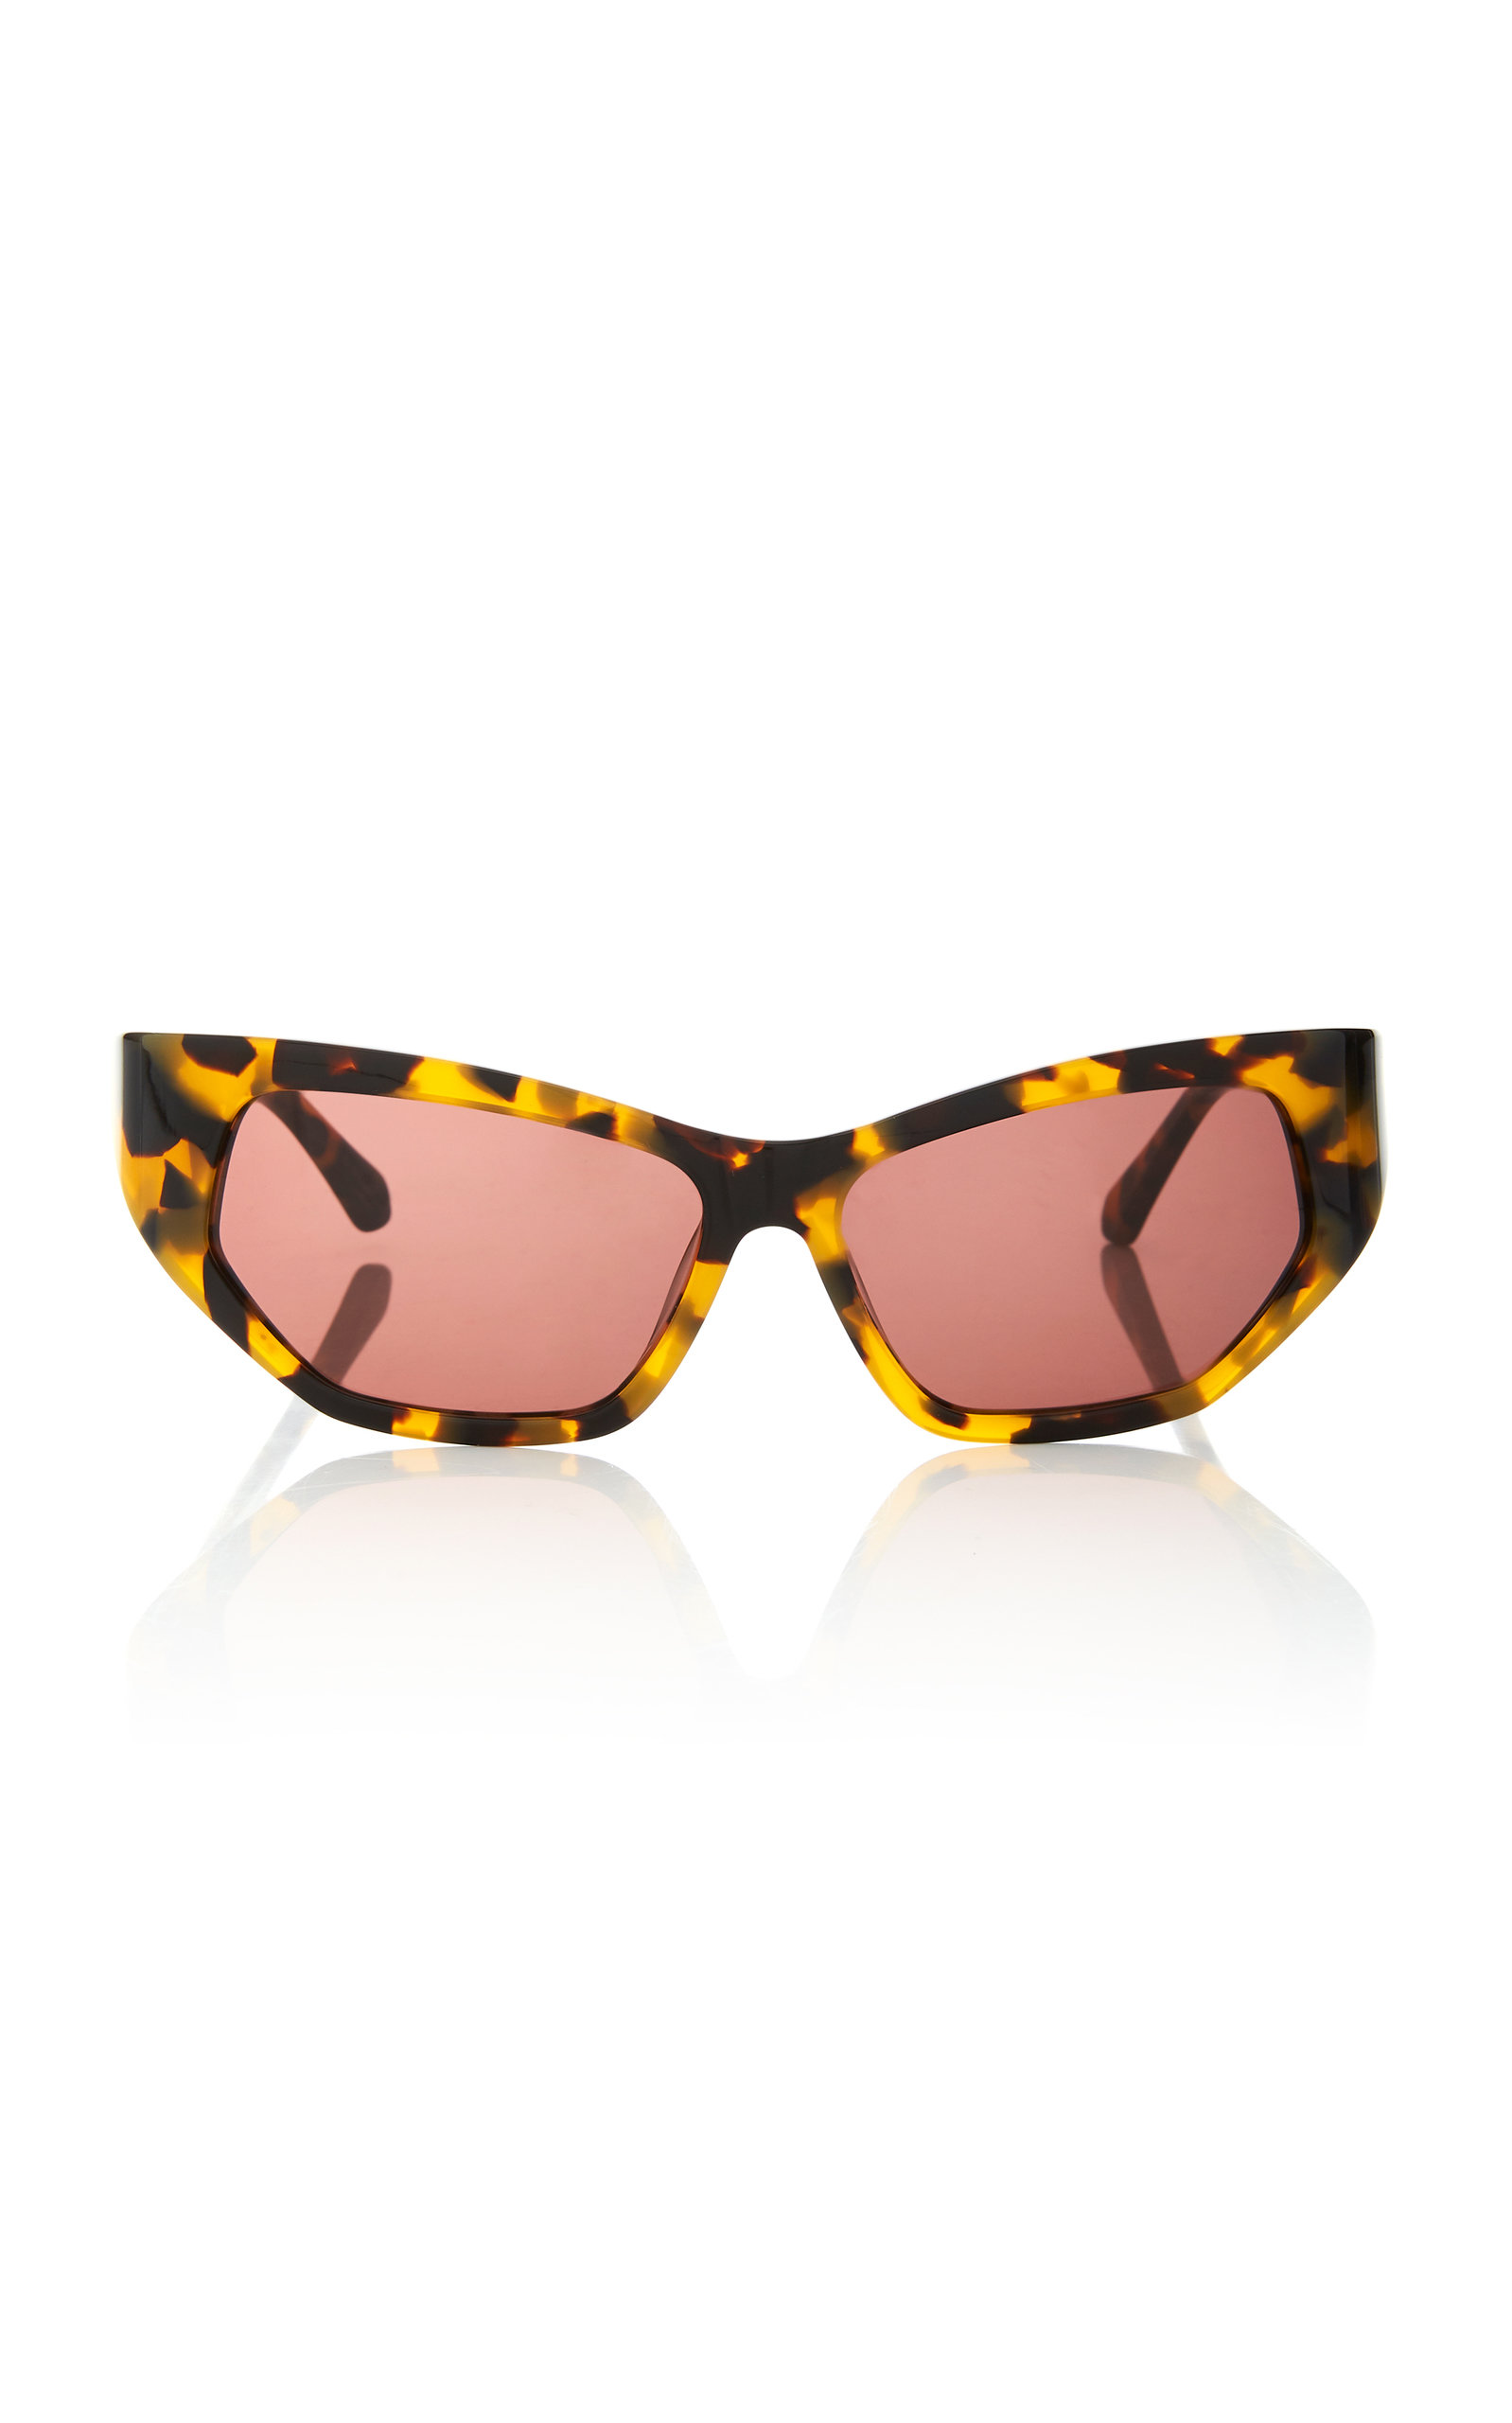 Karen Walker SUPERHERO CAT-EYE TORTOISESHELL ACETATE SUNGLASSES